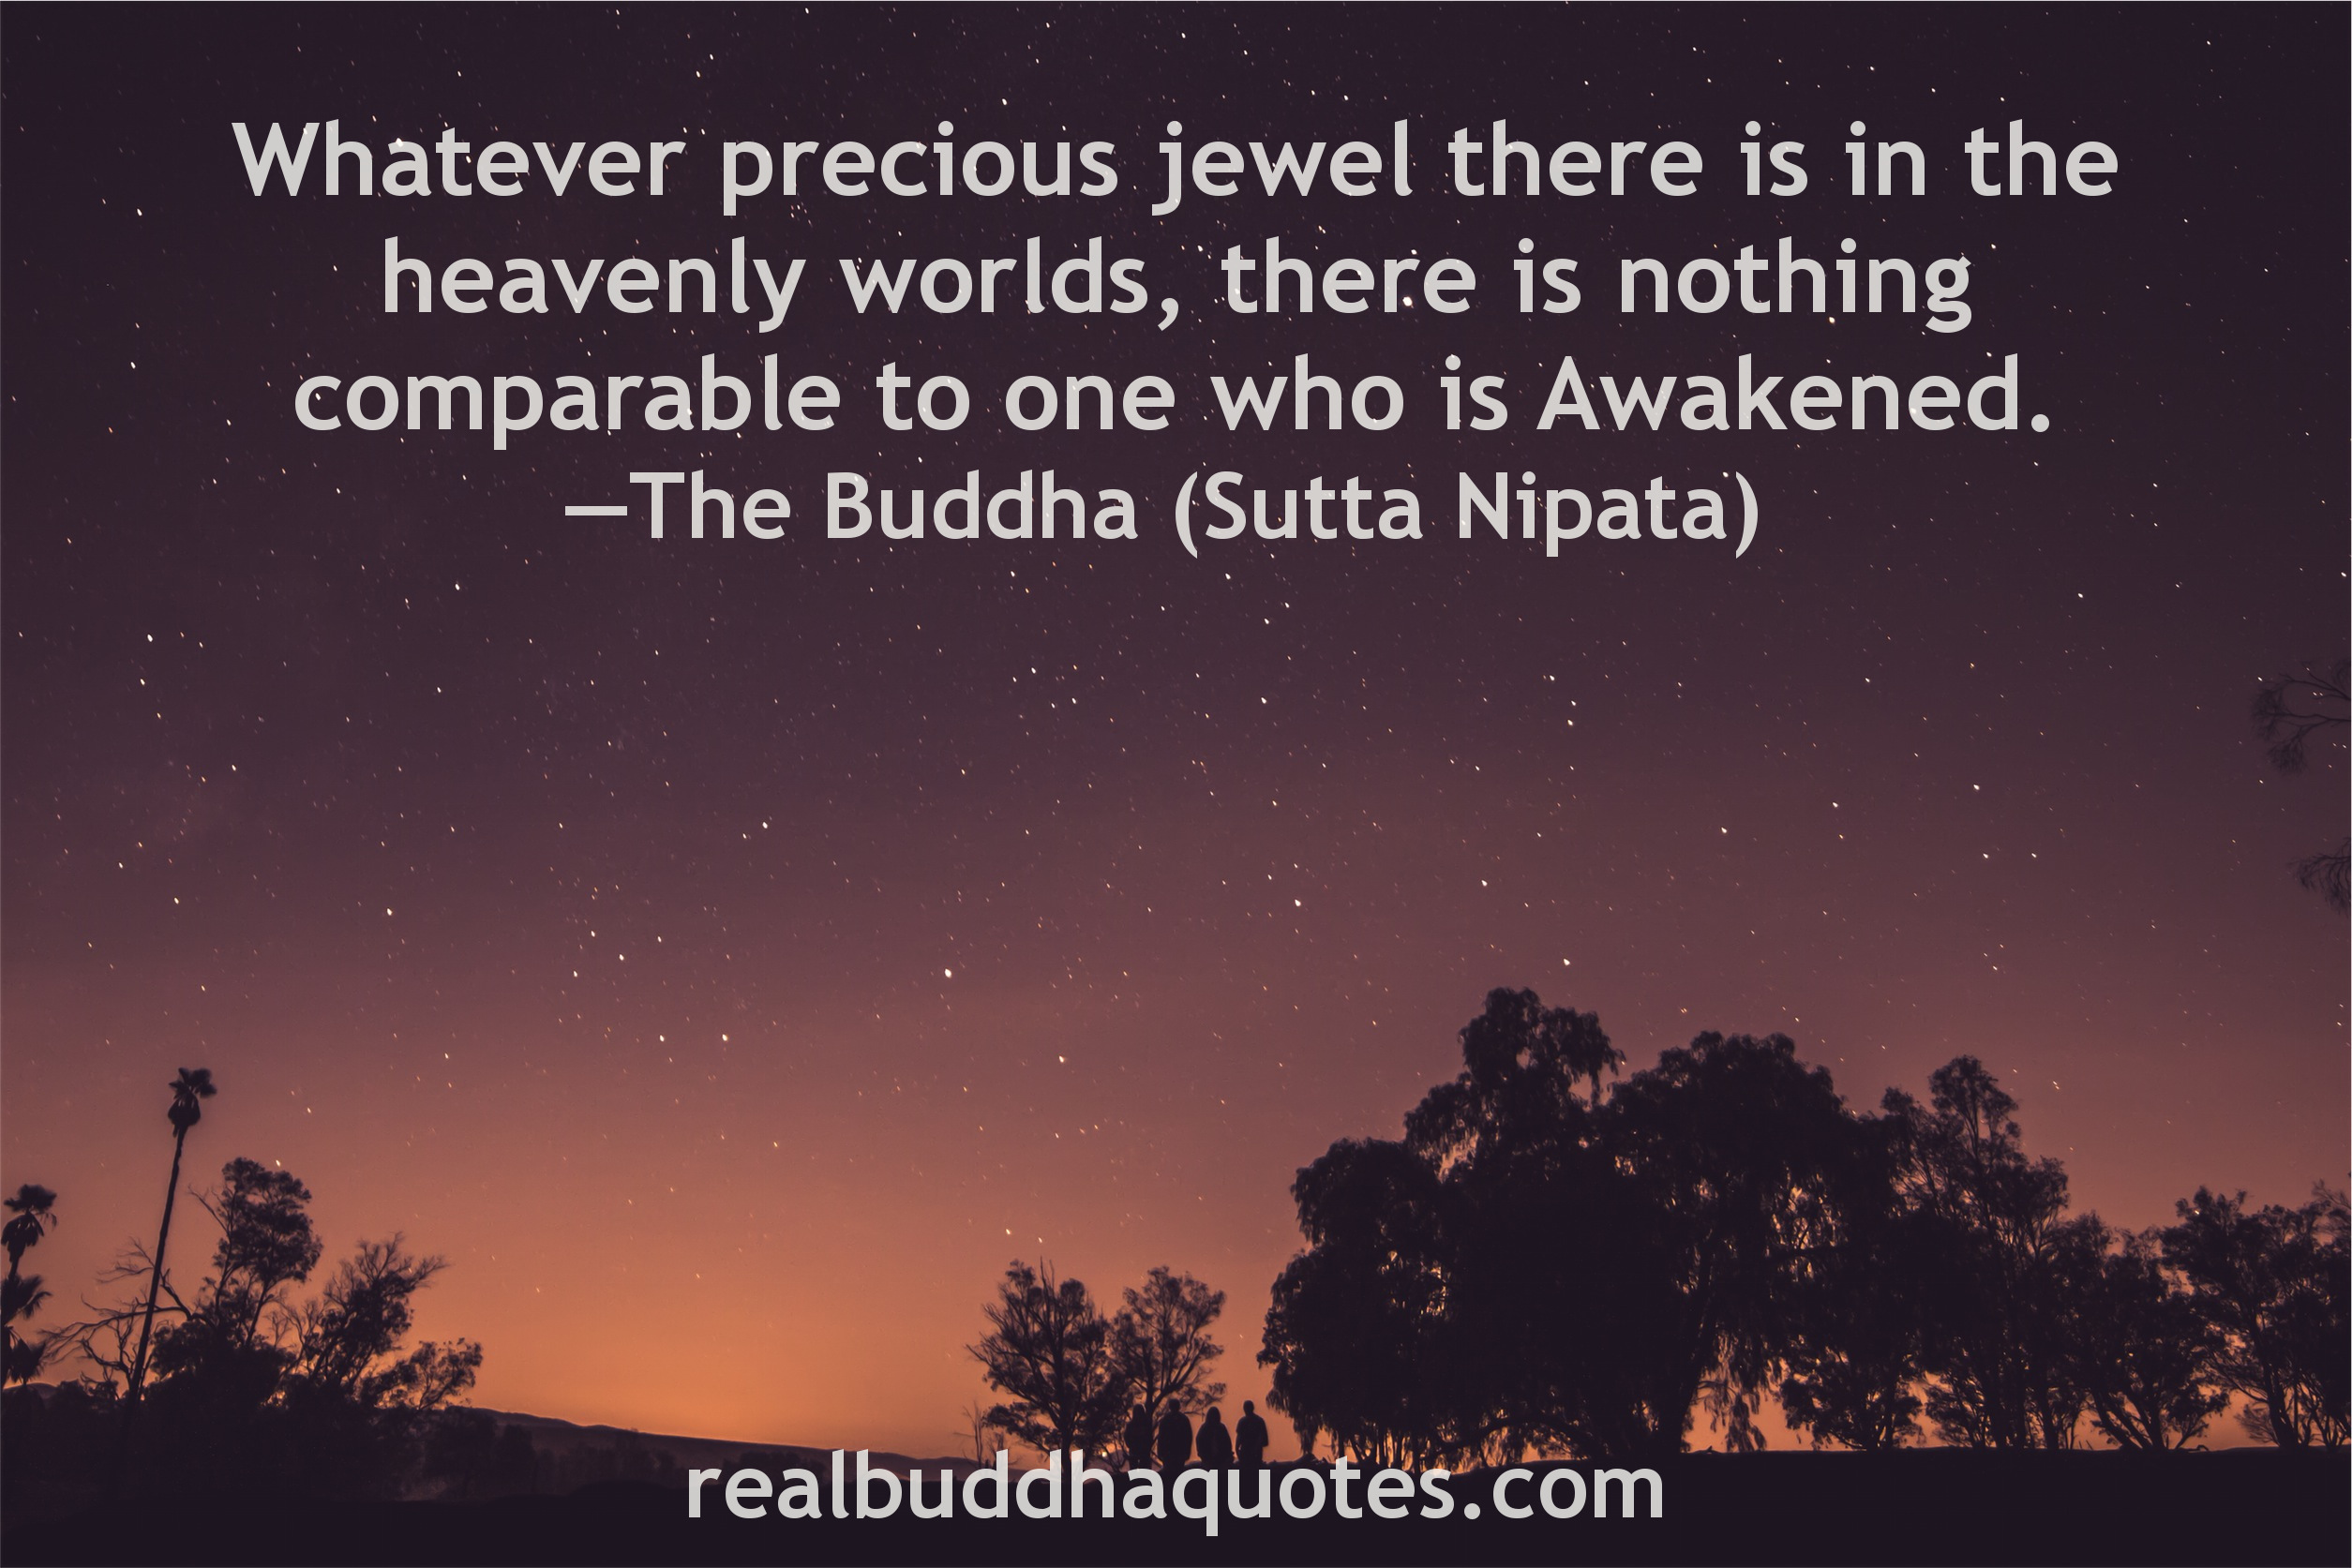 Buddha Life Quotes Real Buddha Quotes  Verified Quotes From The Buddhist Scriptures